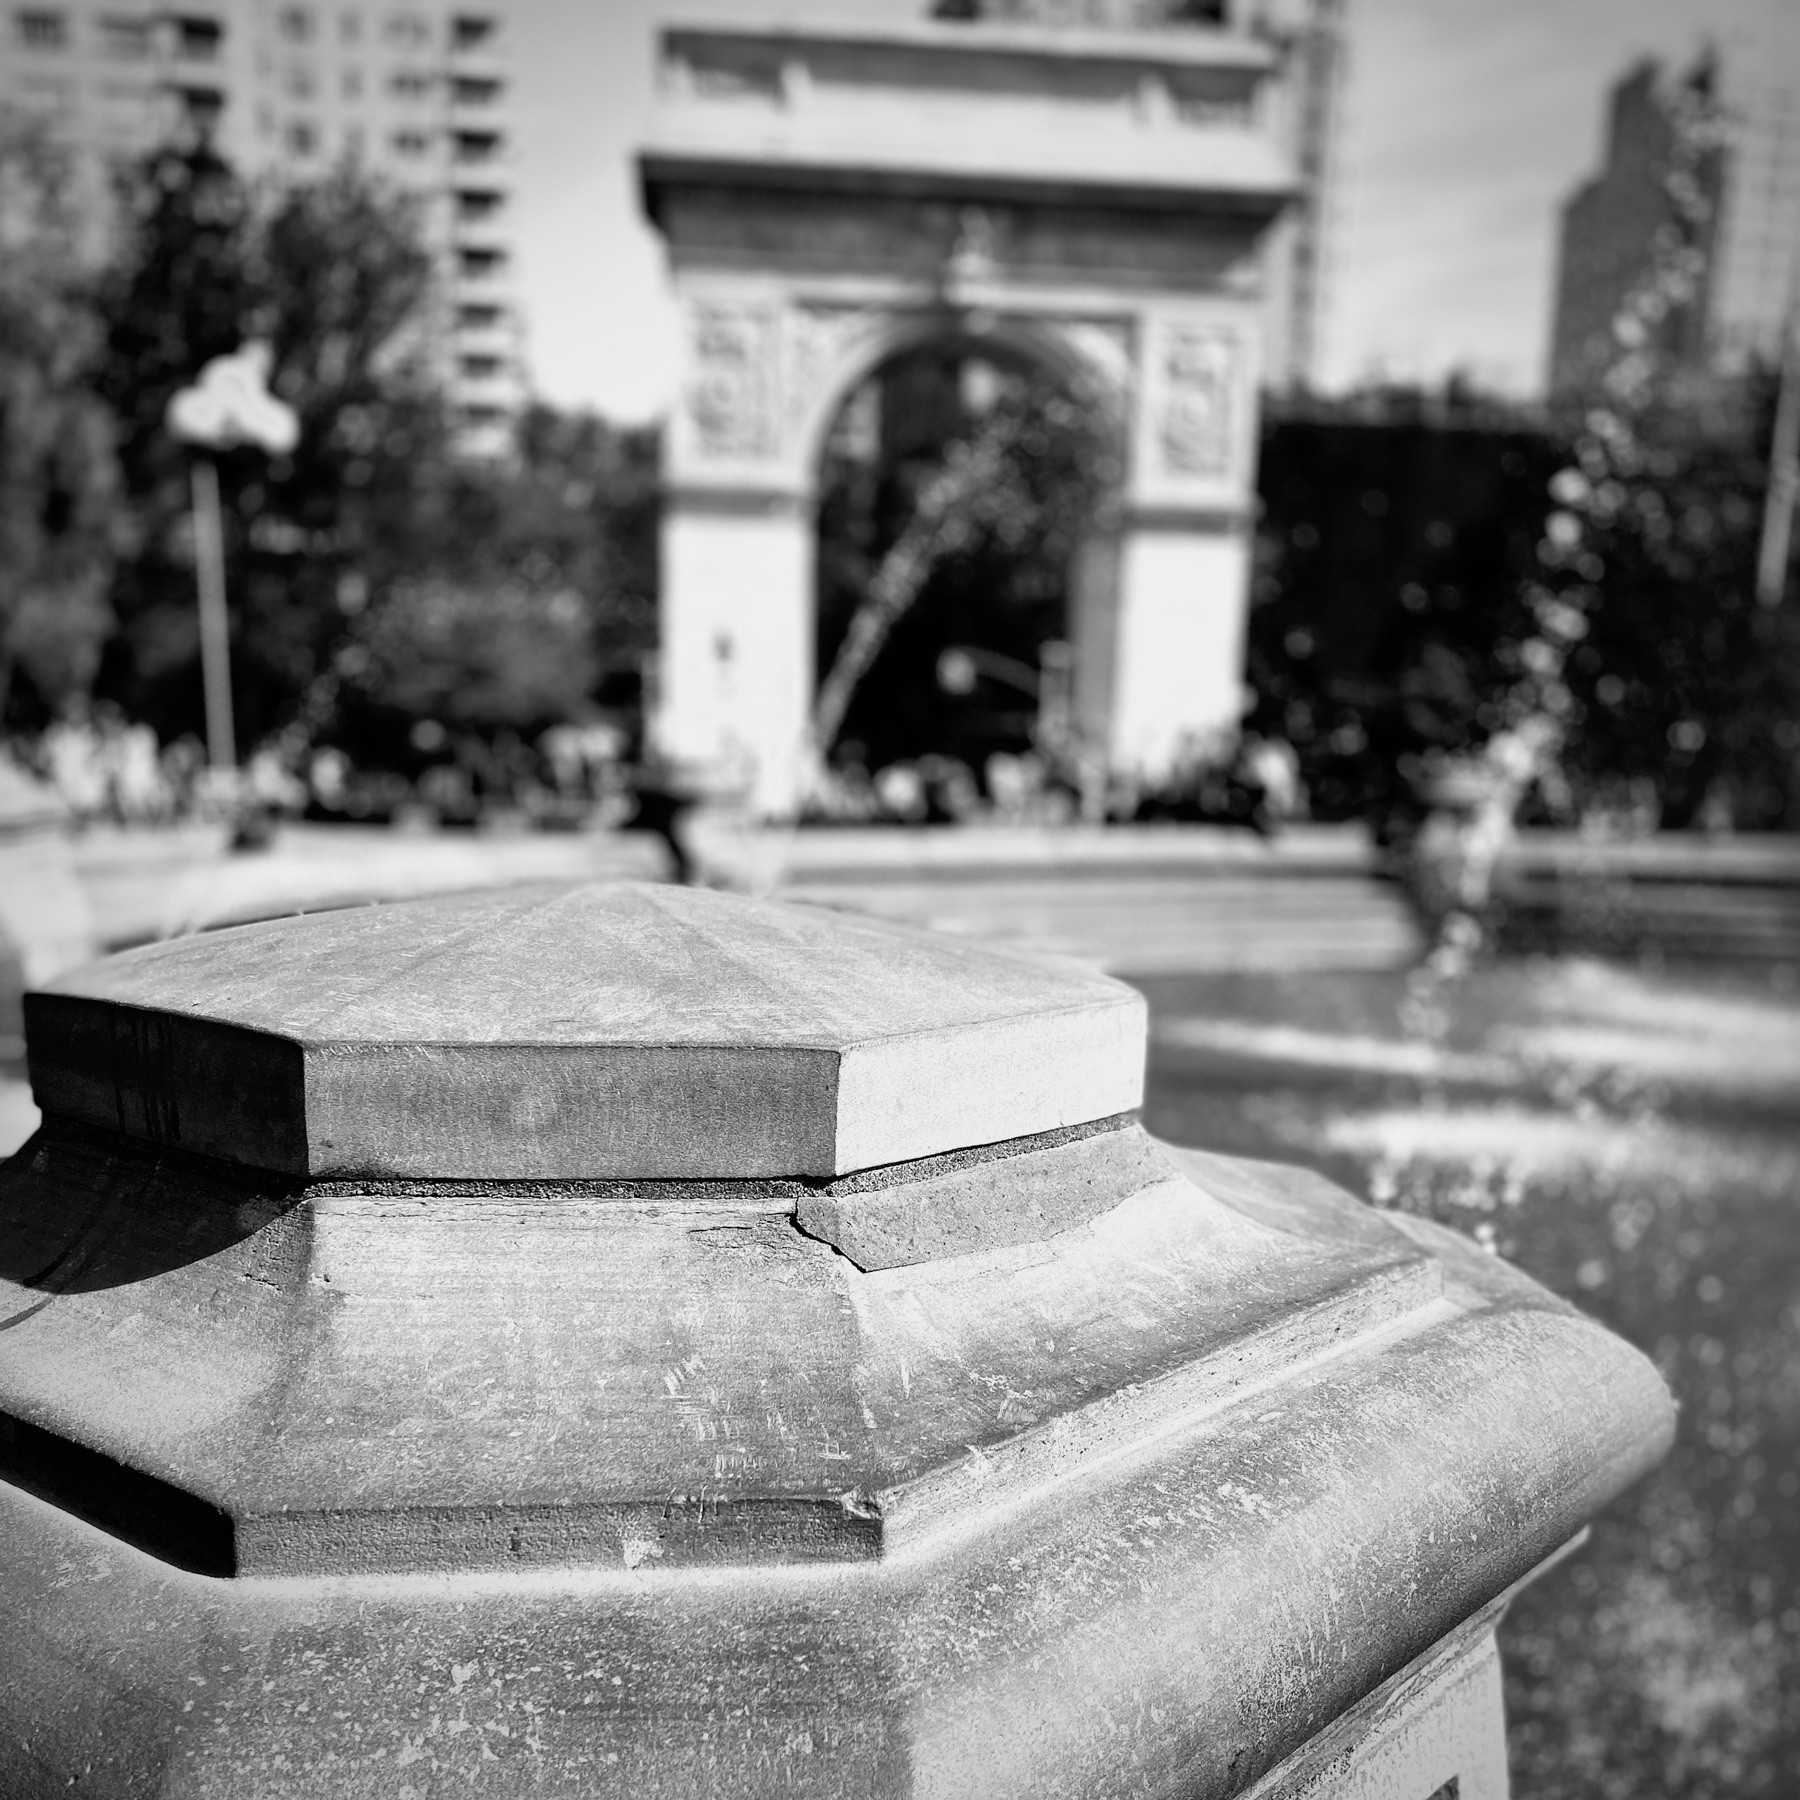 Post from the fountain at Washington Square Park, with arch blurred in background.